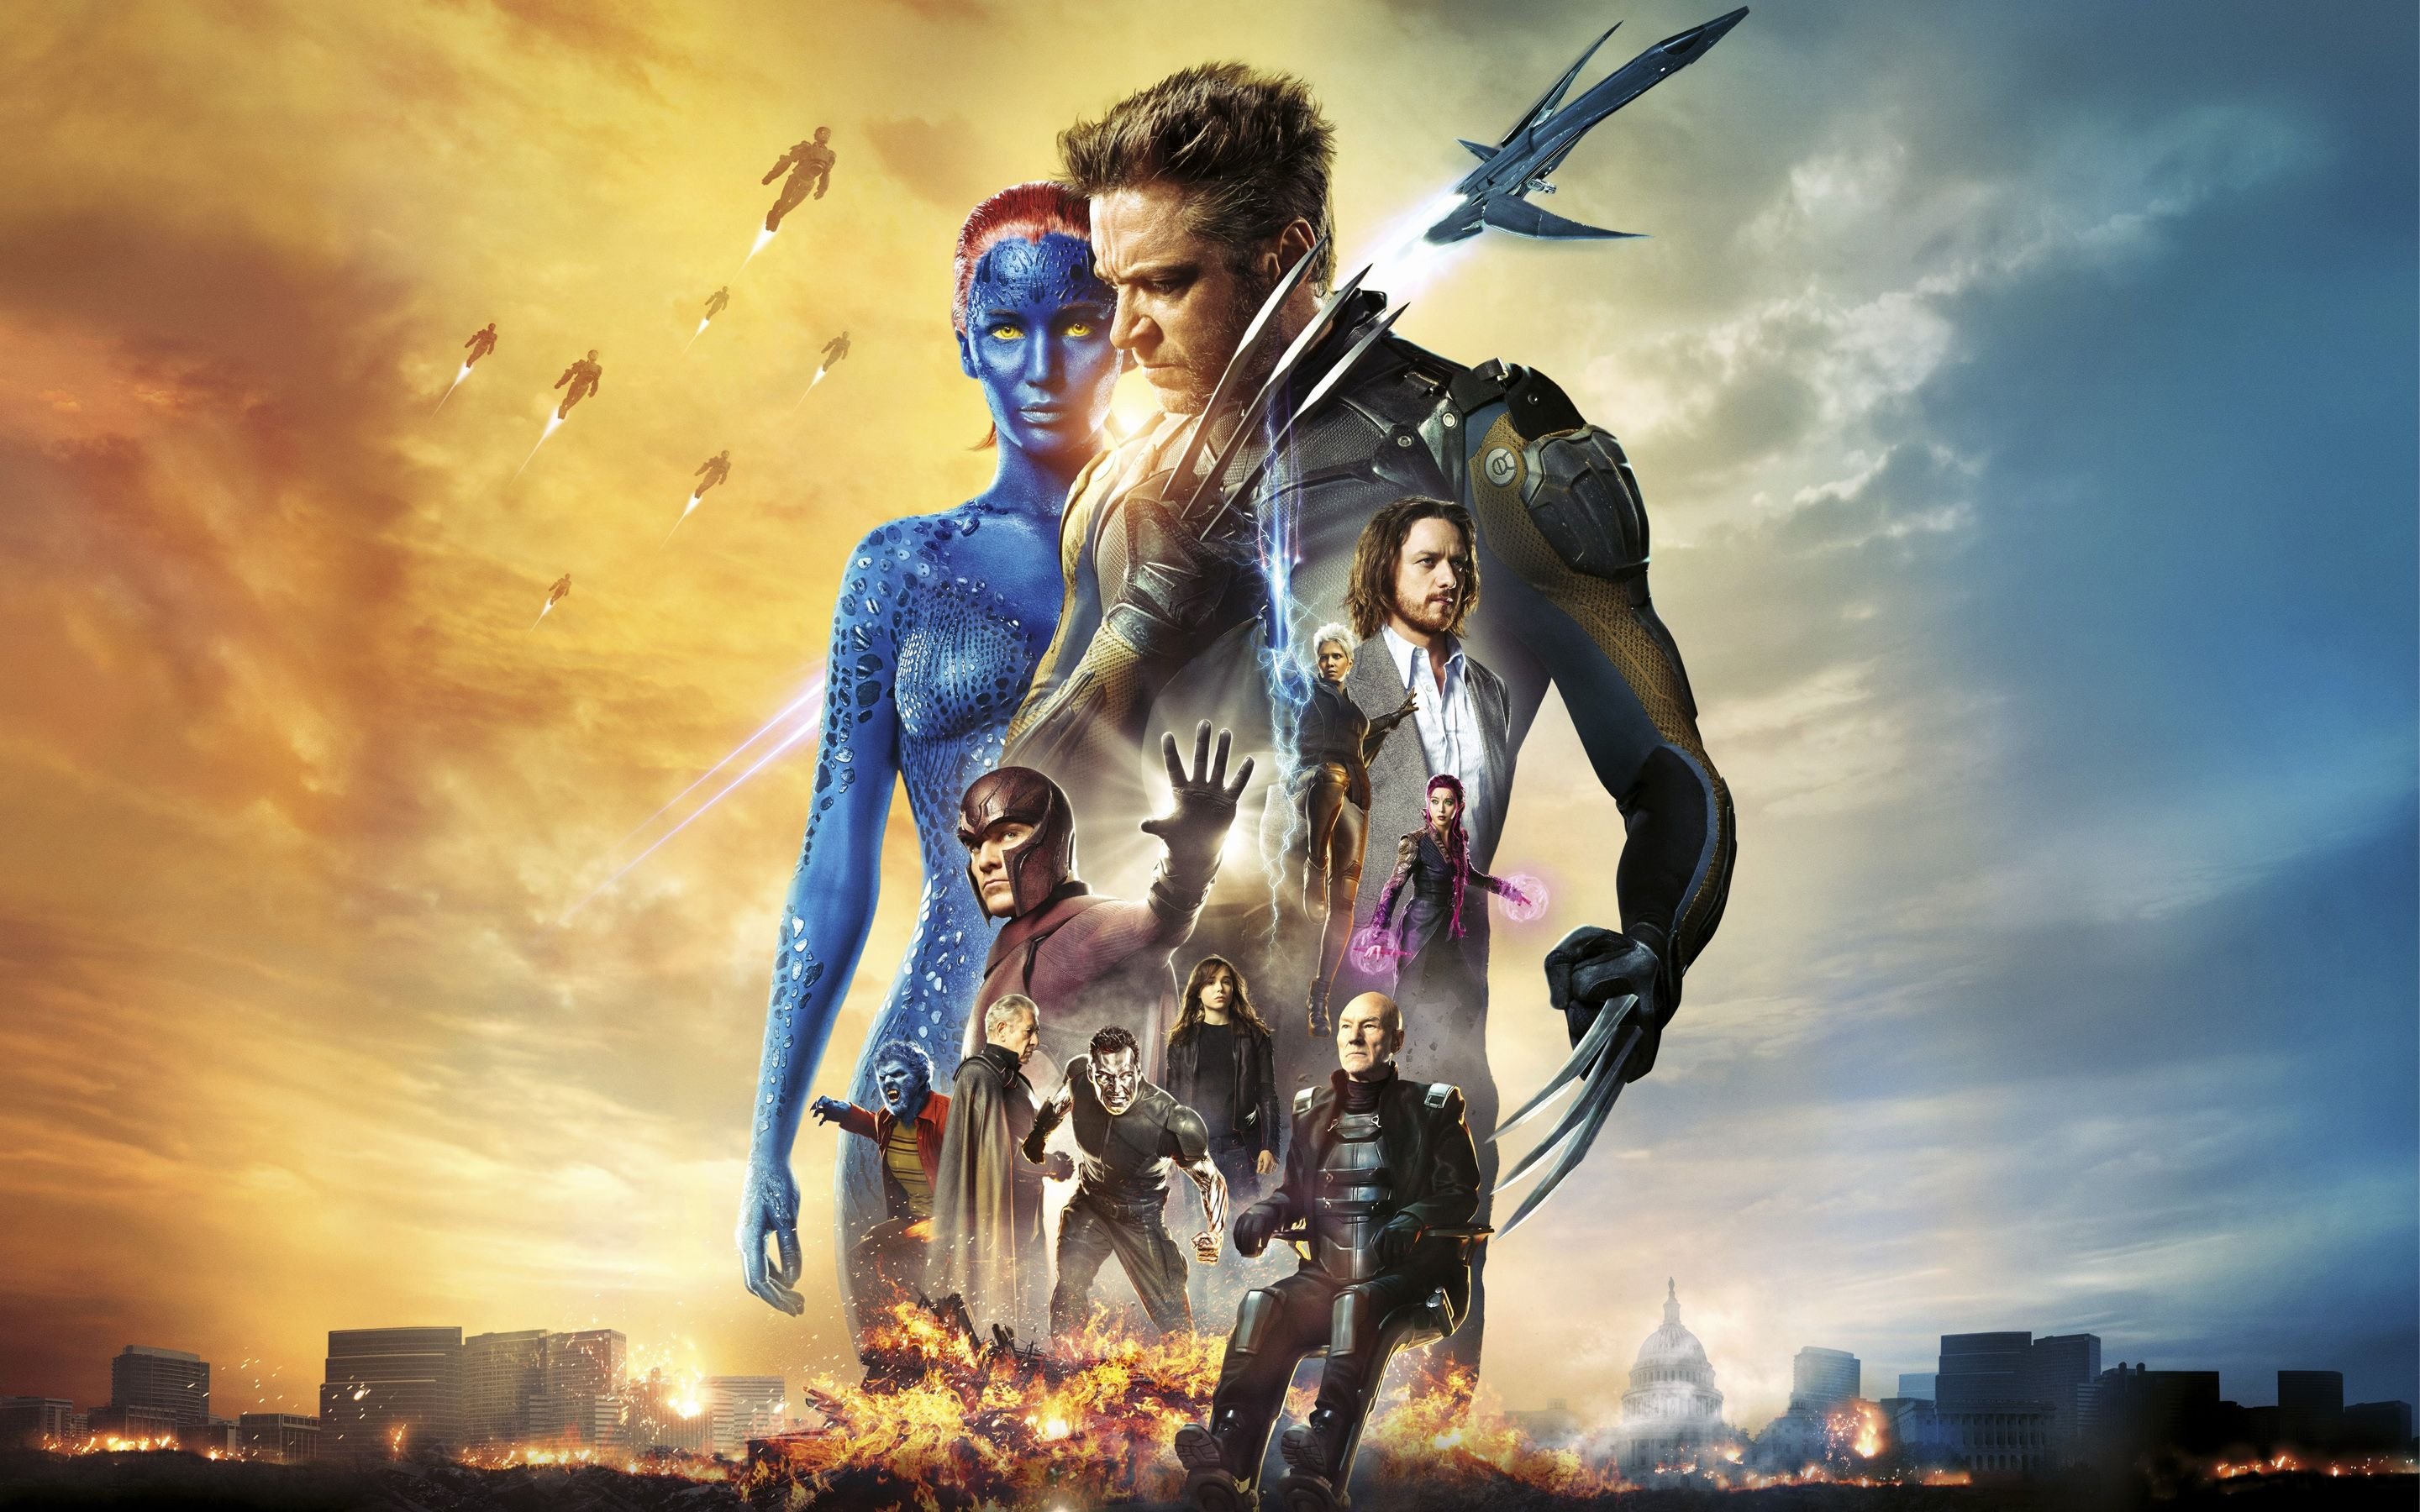 Pin By Cool Wallpapers On Entertainment Days Of Future Past X Men Hollywood Studio